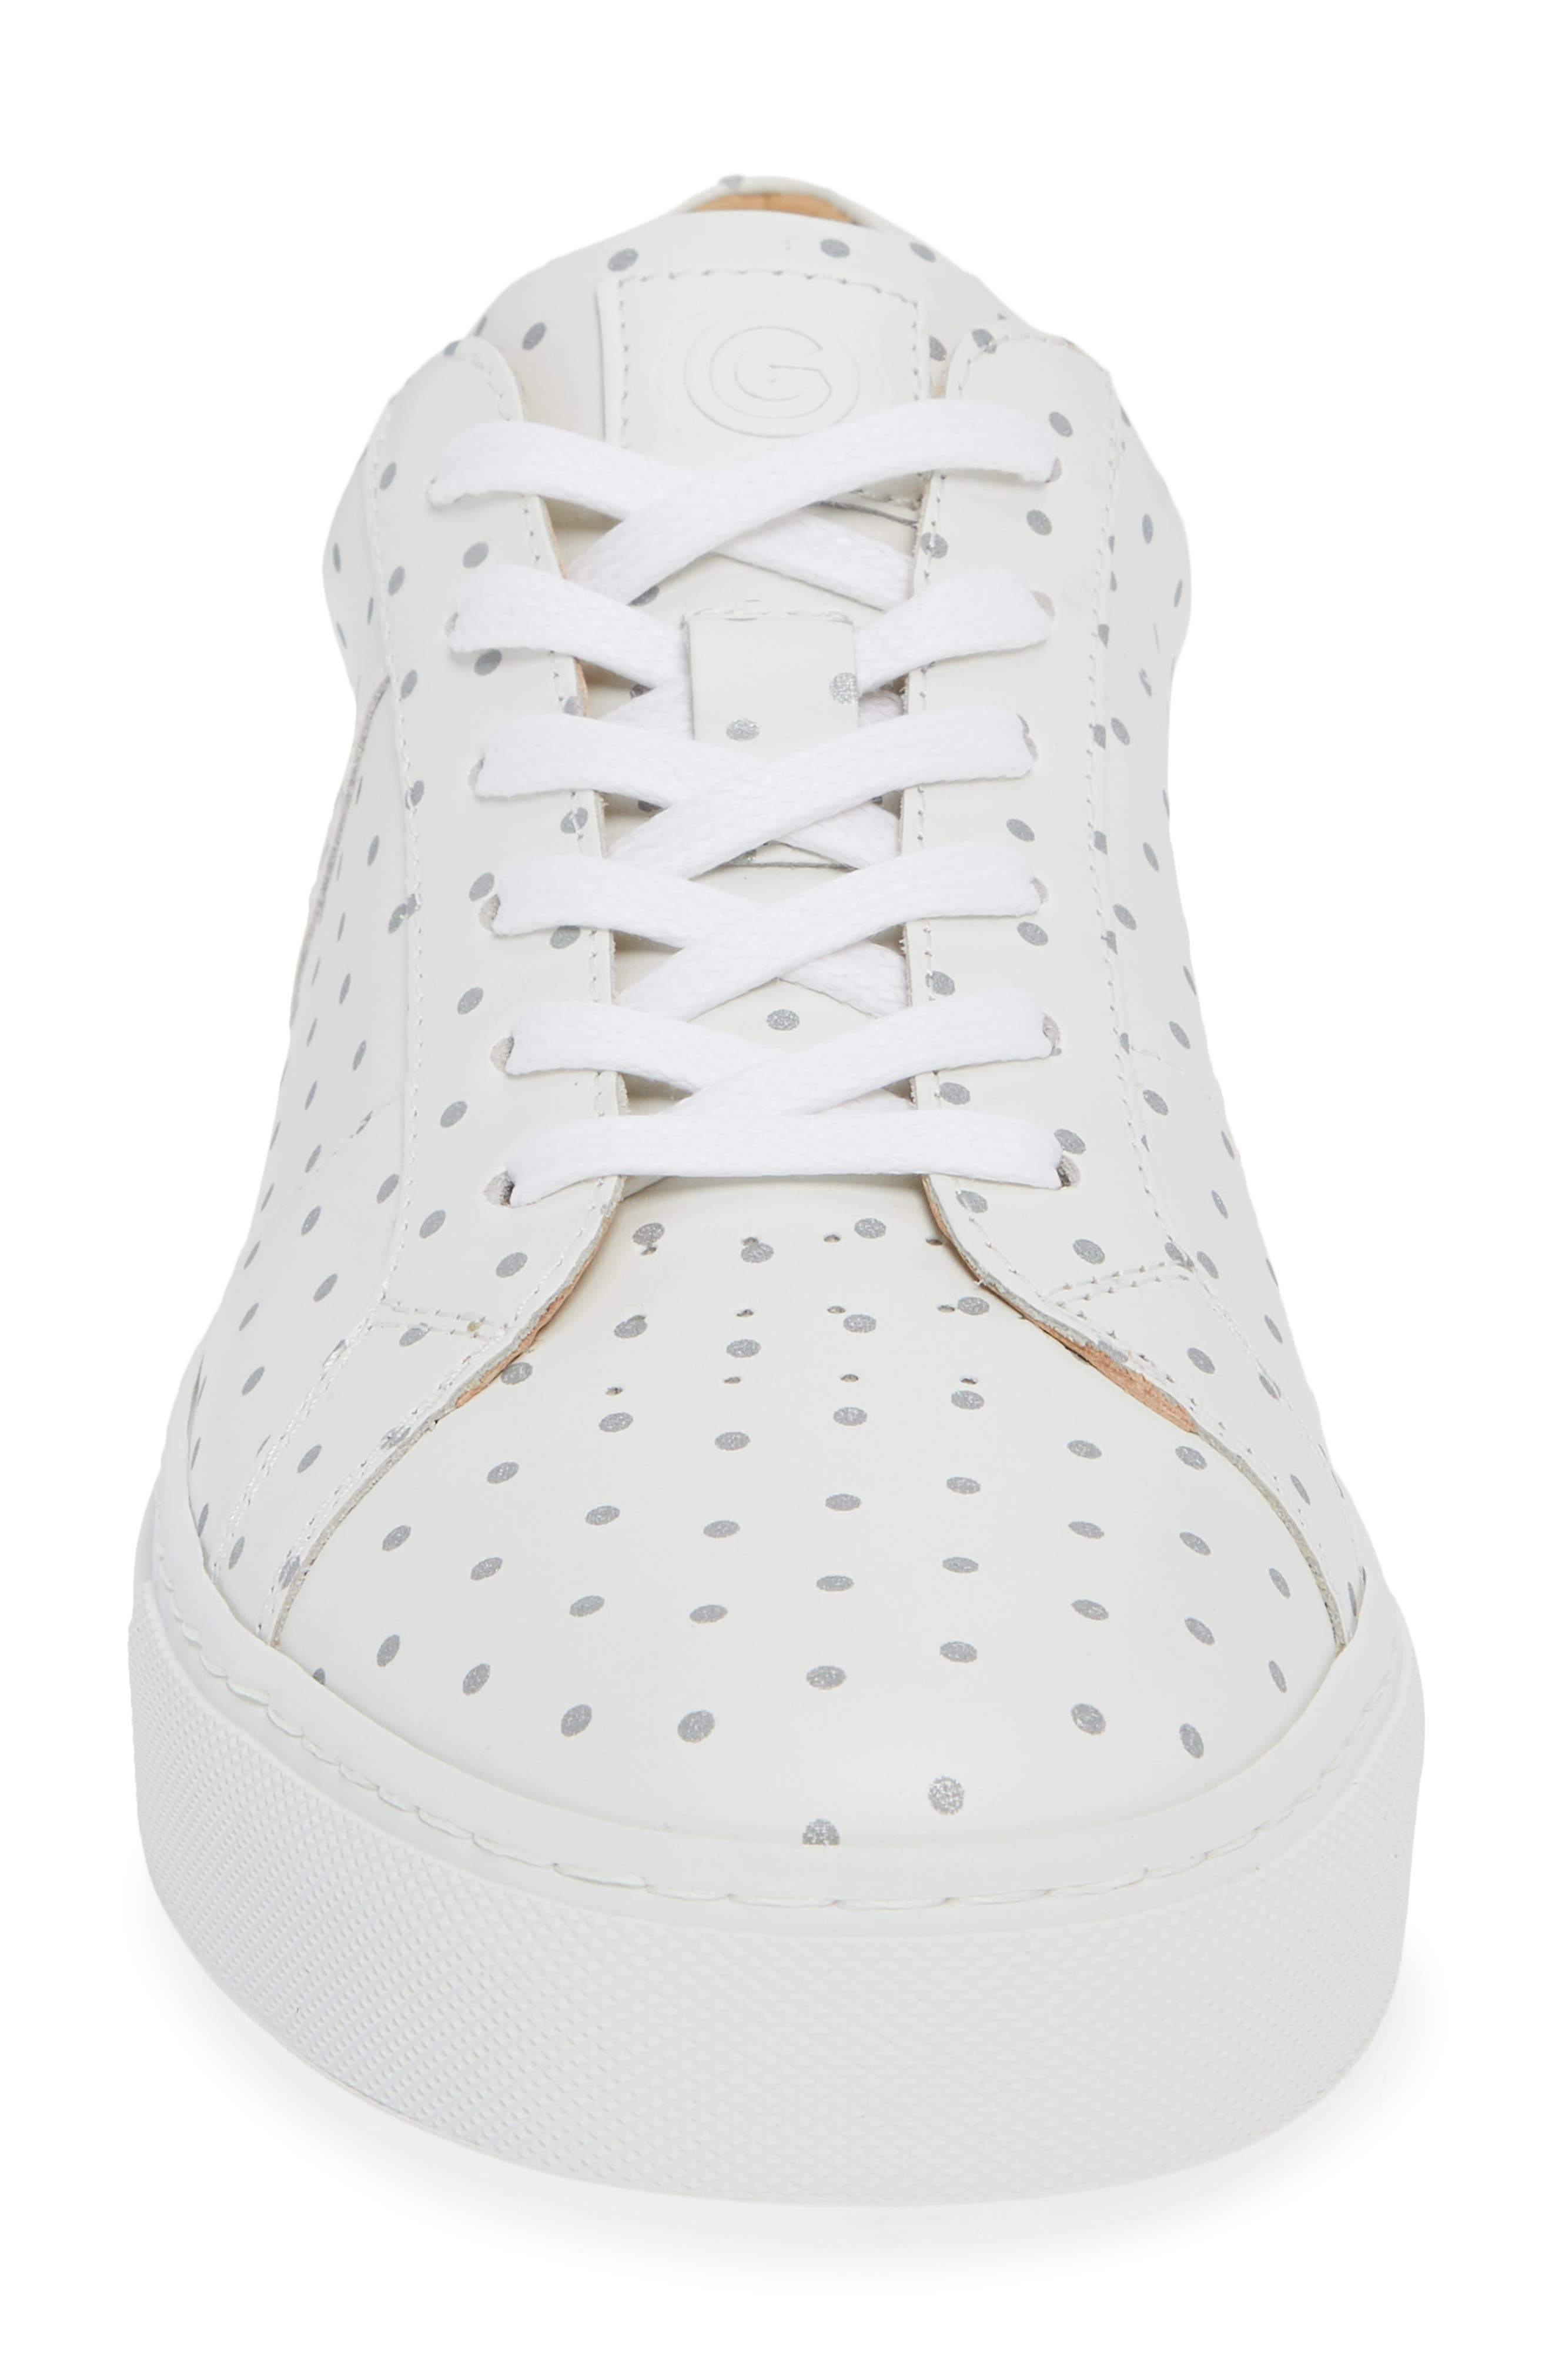 Nick Wooster x GREATS Royale Dots Low Top Sneaker,                             Alternate thumbnail 4, color,                             WHITE W/ 3M DOTS